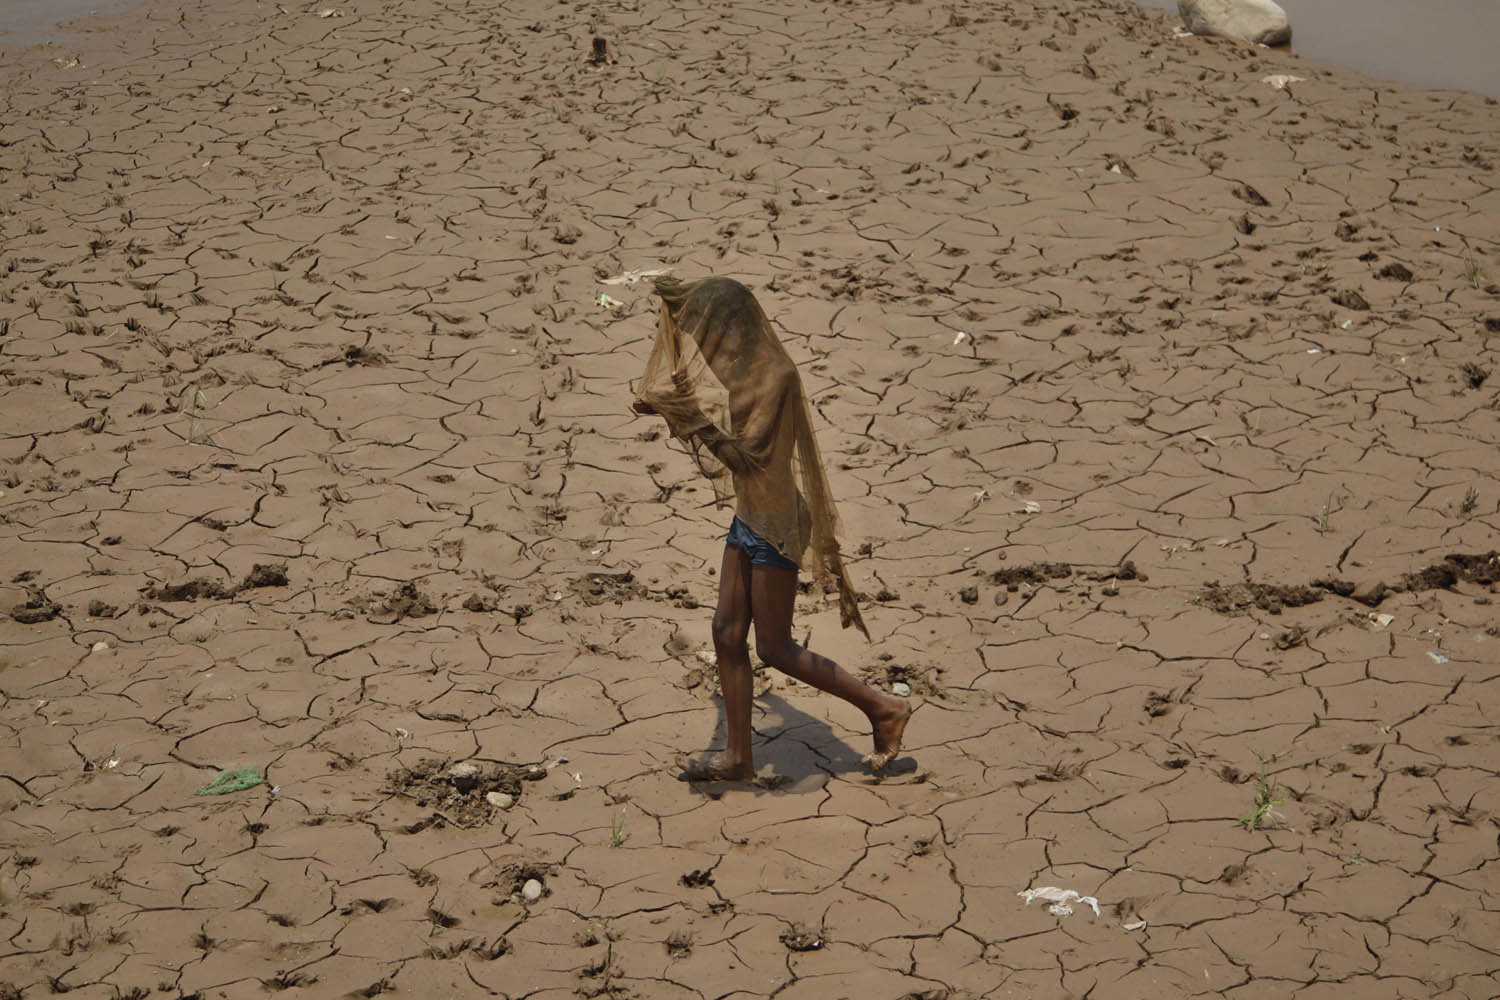 June 1, 2013. A young Indian covers his face to protect himself from the heat as he walks on a dried bed of the River Tawi on a hot summer day in Jammu, India.